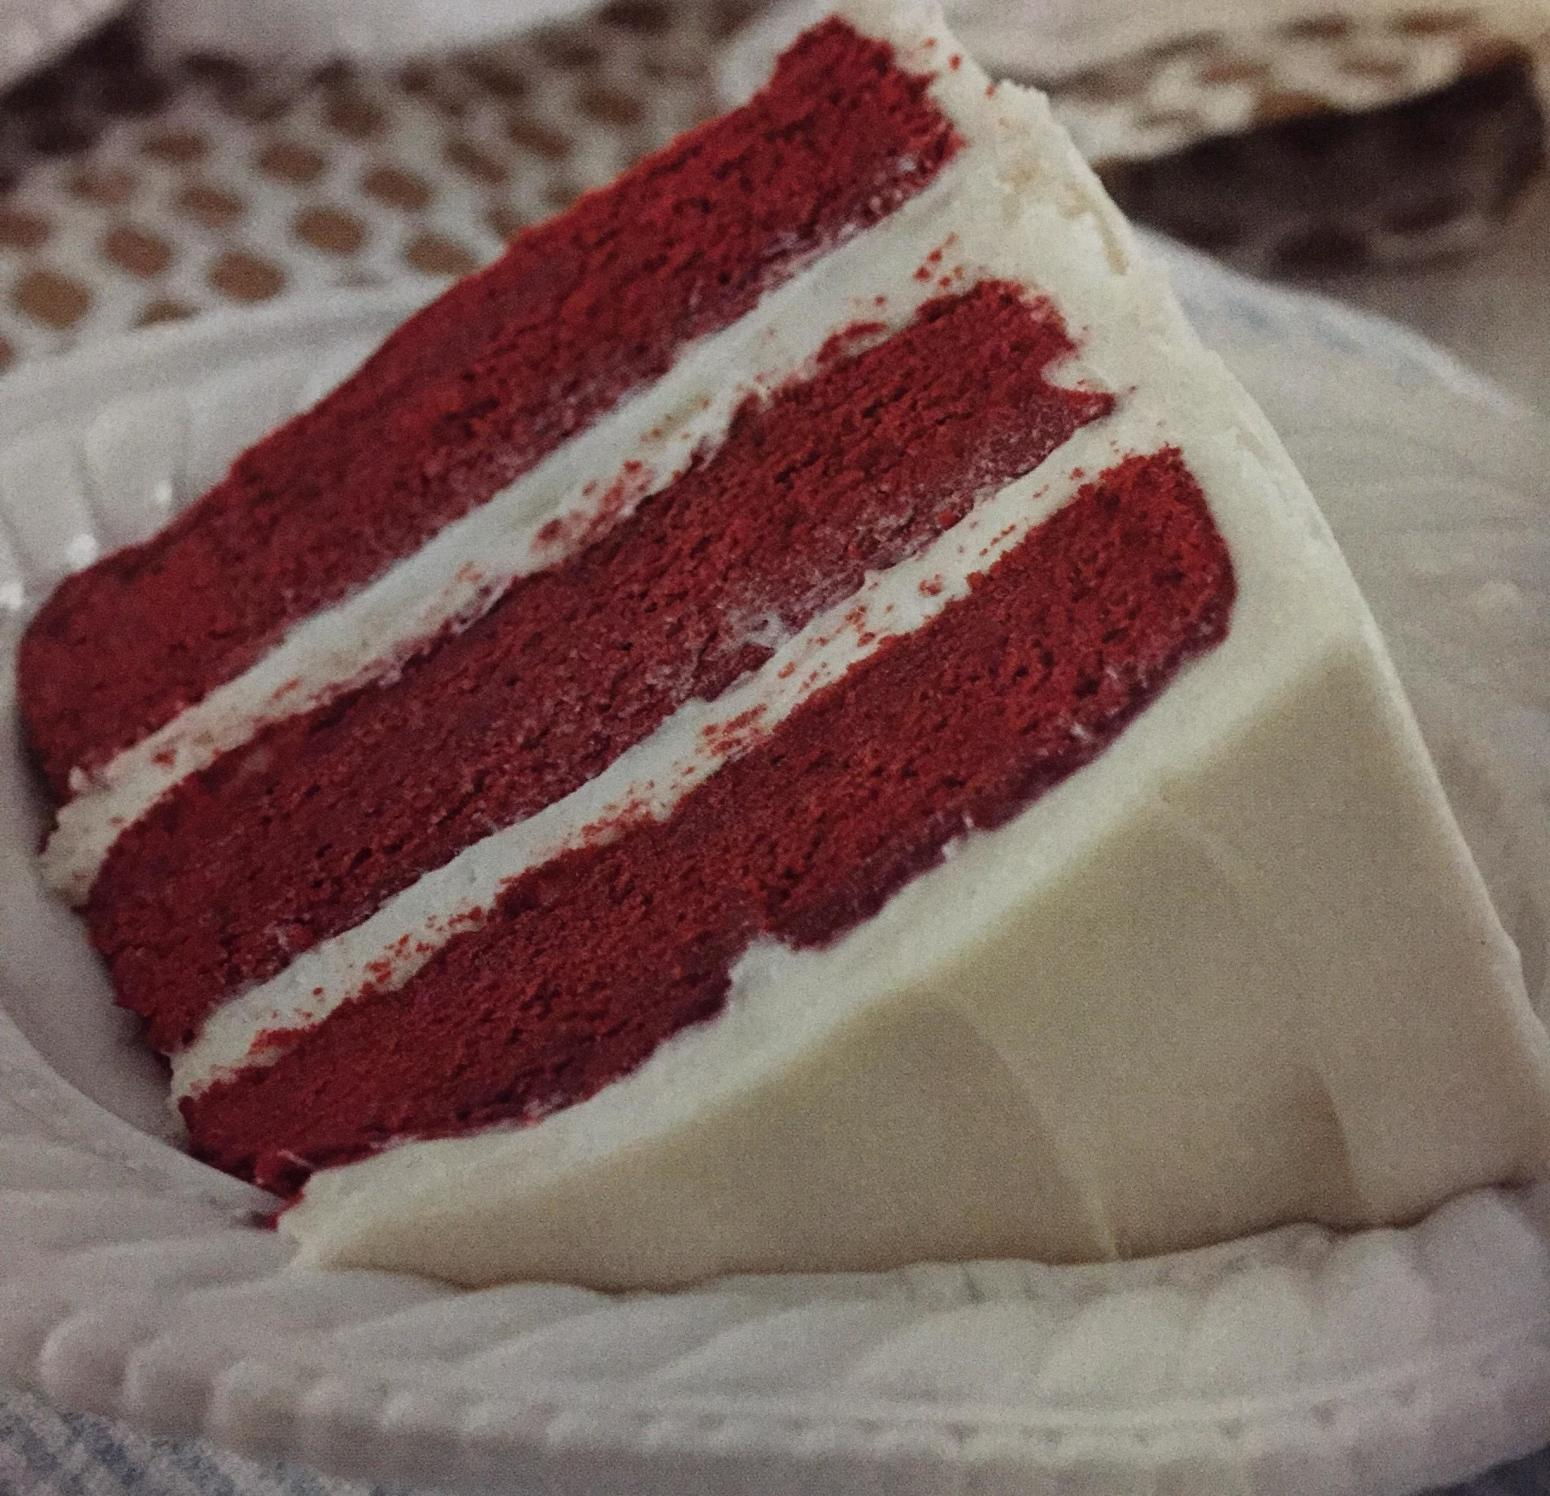 Old Fashioned Red Velvet Cake Recipe From Scratch